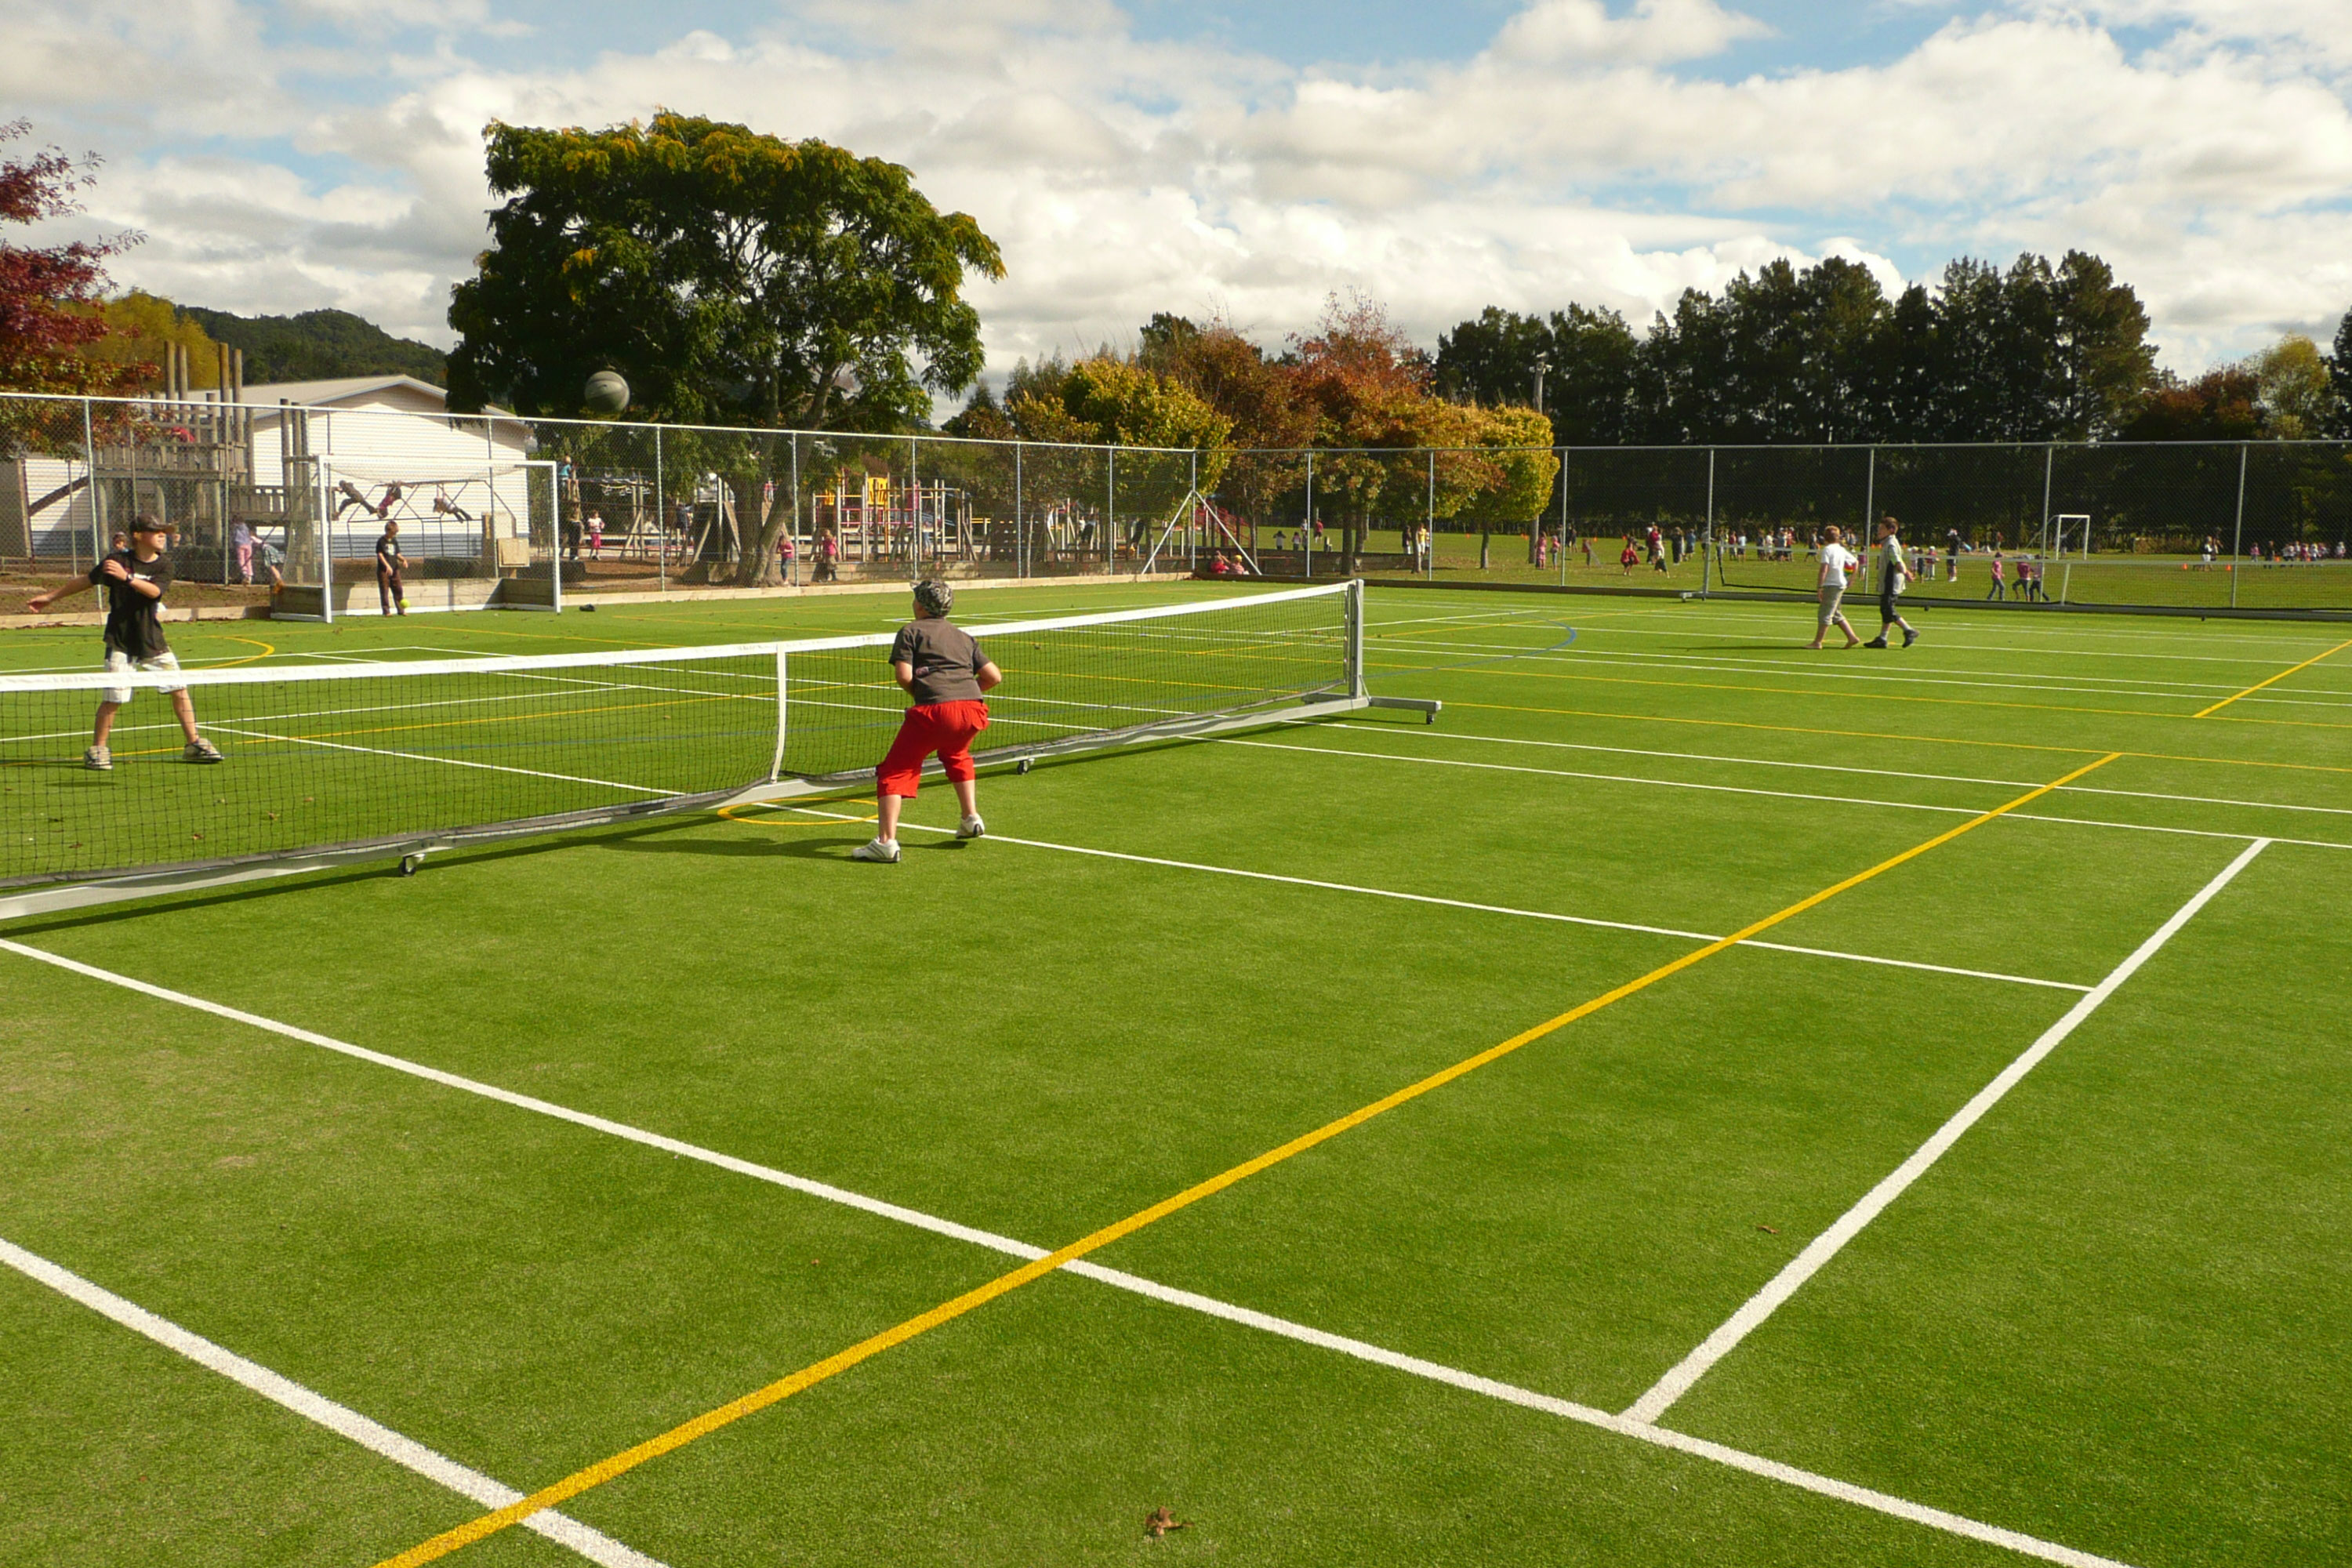 School multi play courts, tennis